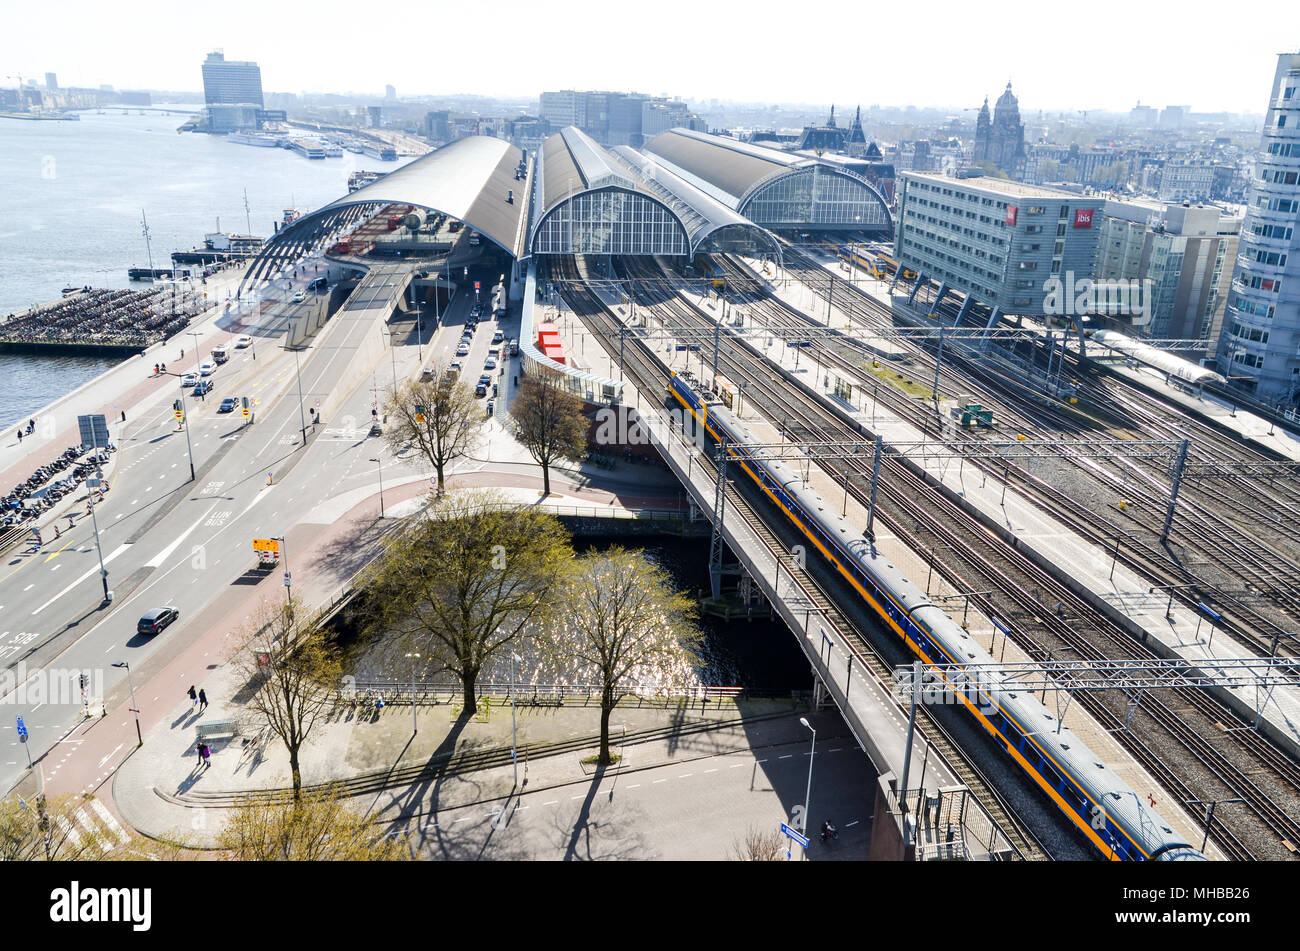 Aerial view of Amsterdam and Centraal Station showing mobility solutions (trains on railways, cars on roads, ferries on waterways), Amsterdam - Stock Image